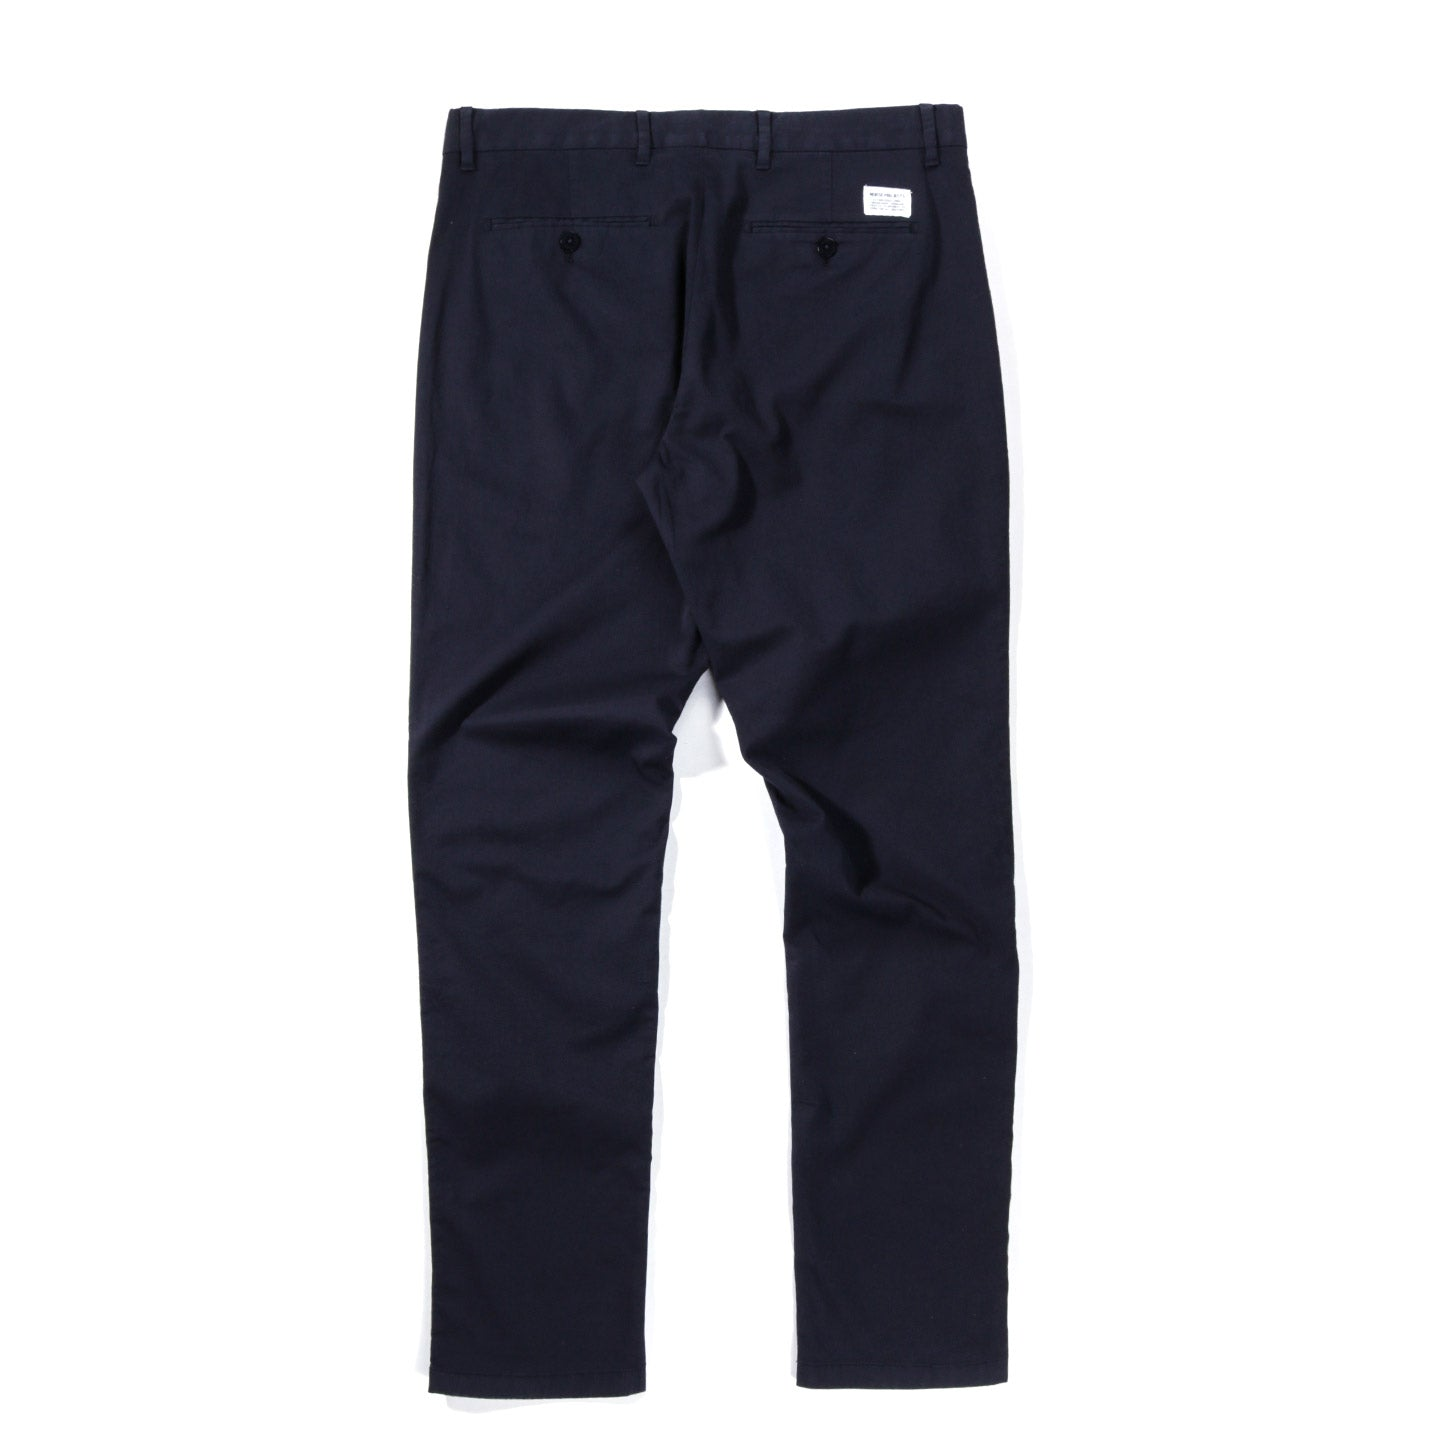 NORSE PROJECTS AROS SLIM LIGHT DARK NAVY